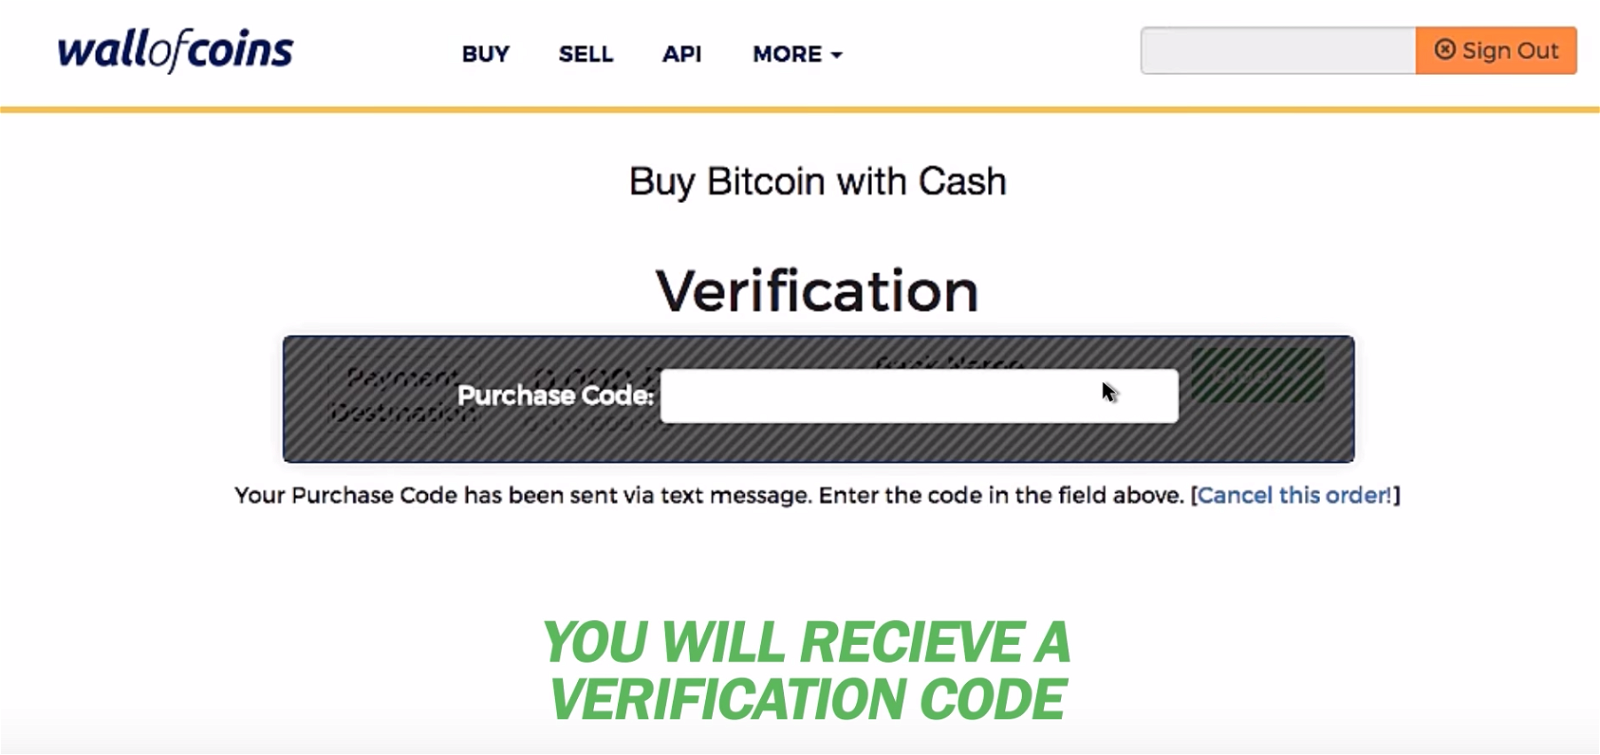 1631490559_851_How-to-Buy-Bitcoin-with-Cash